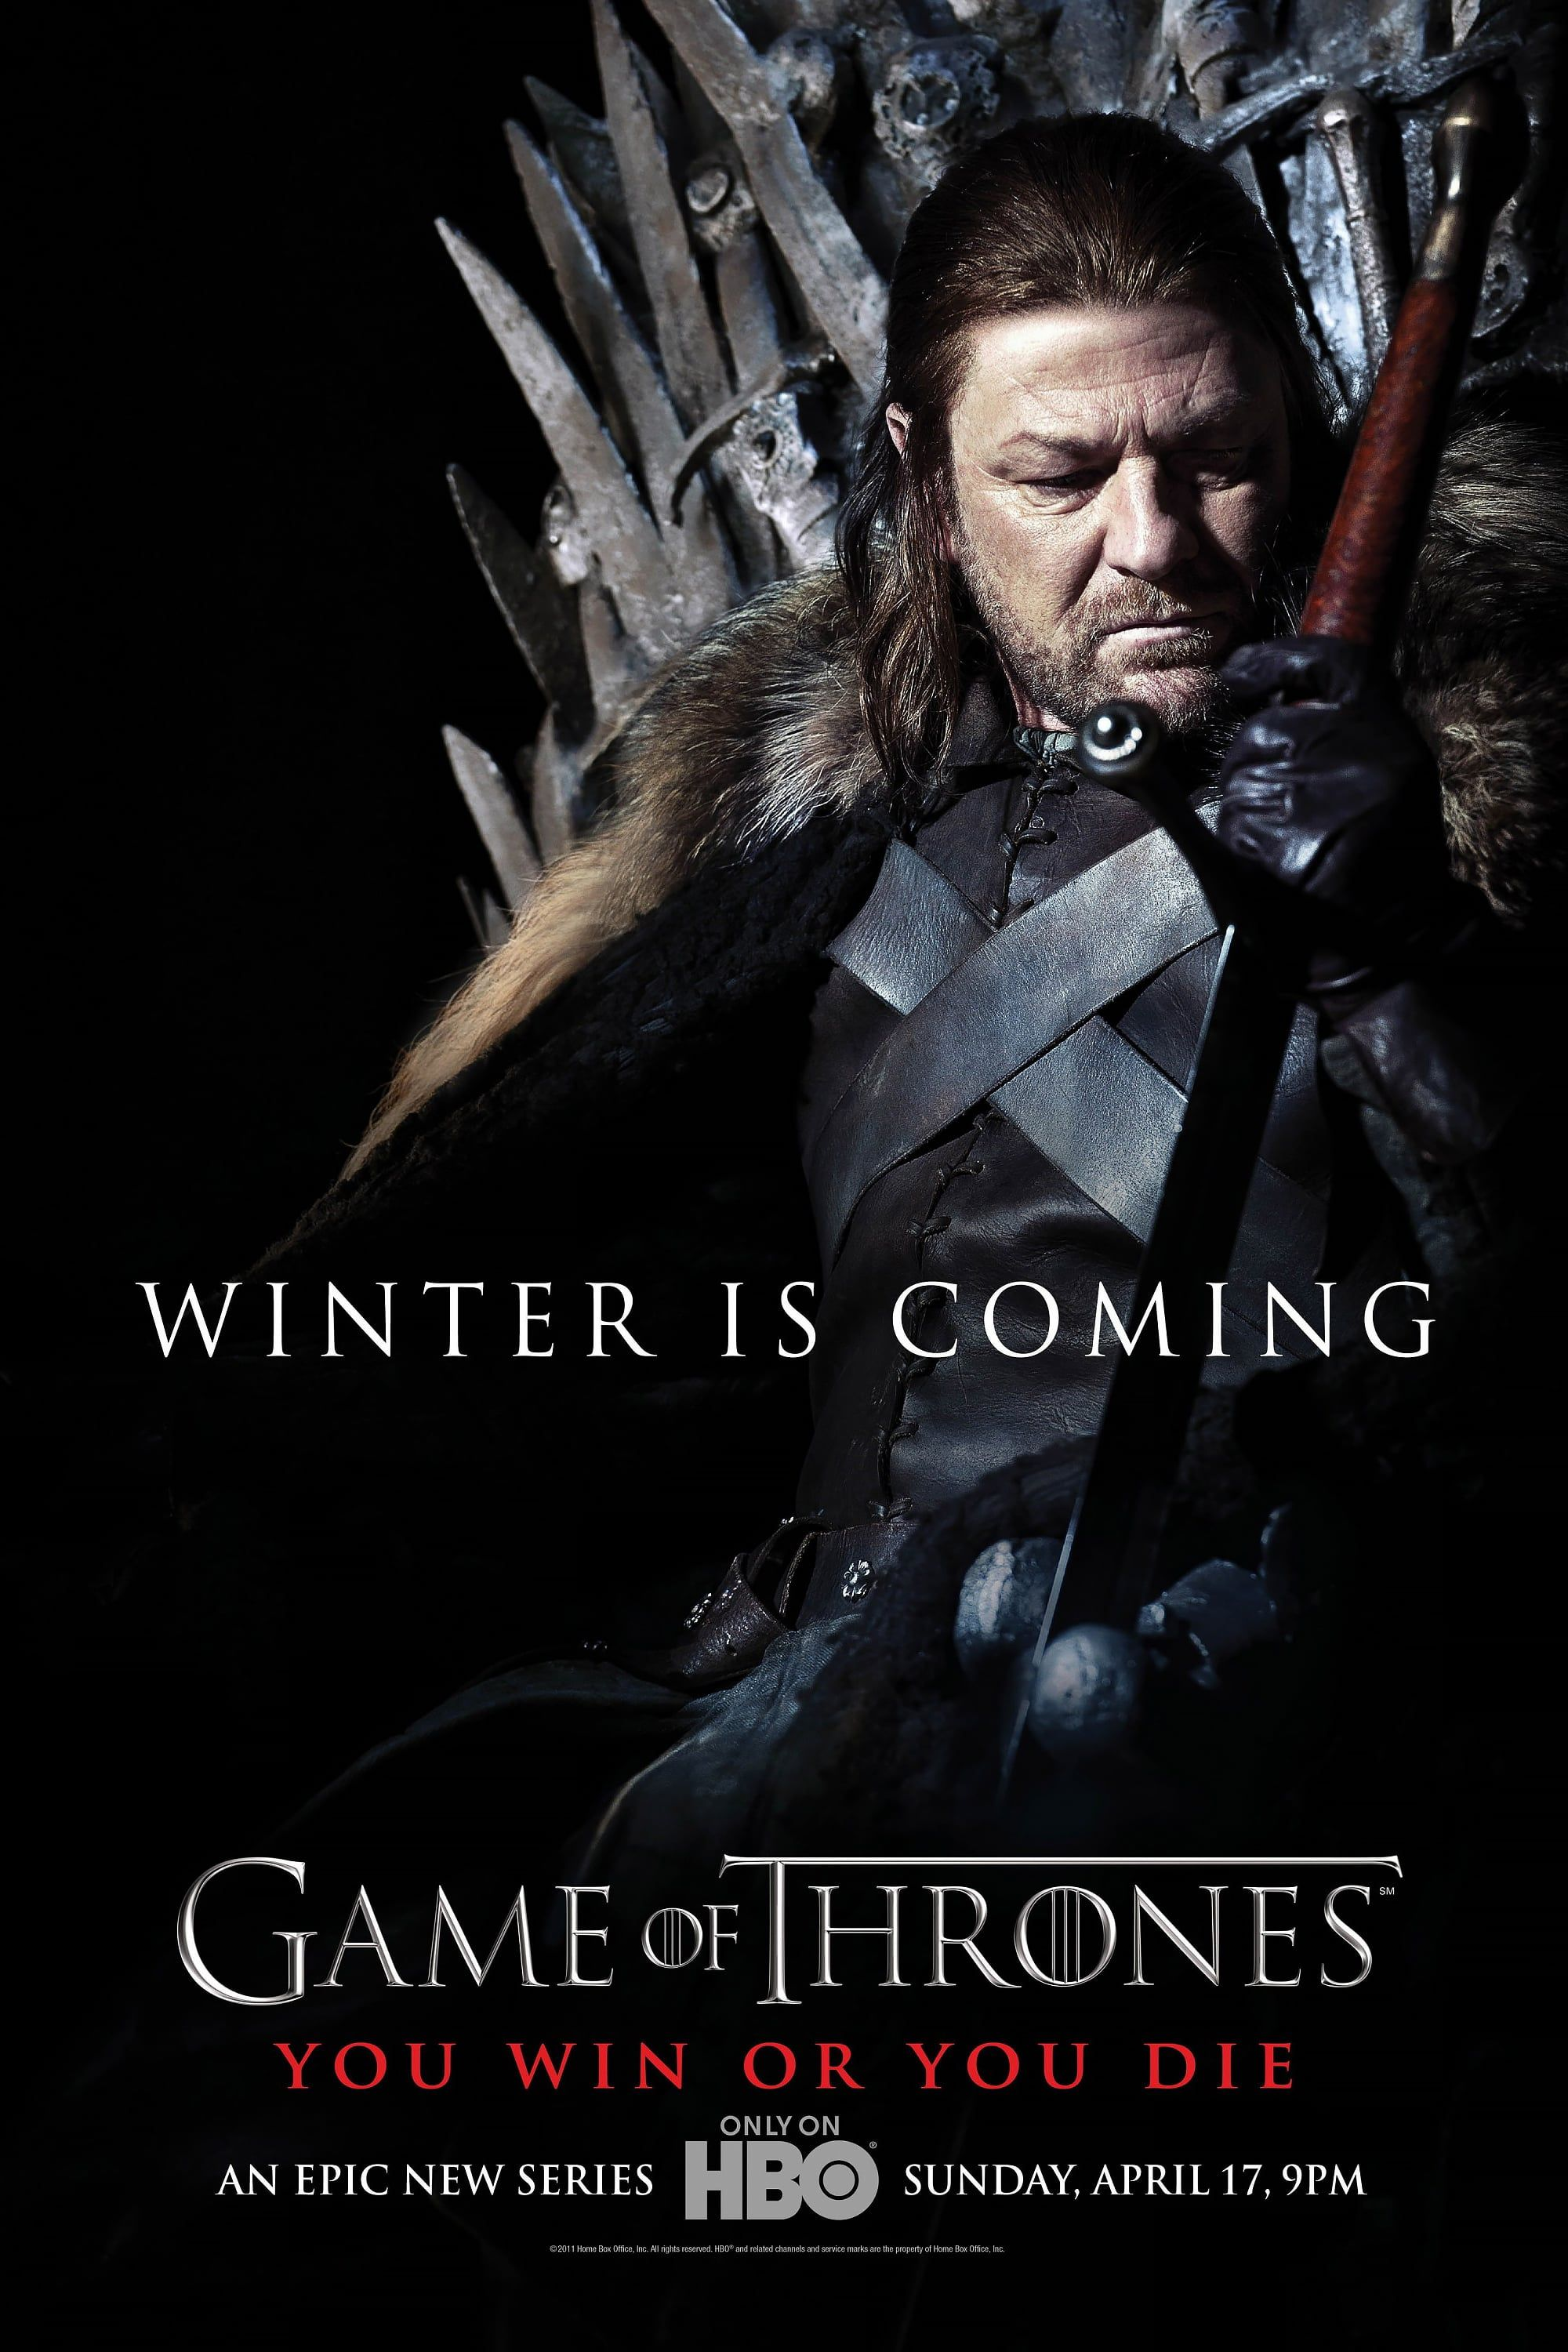 Game Of Thrones Saison 1 Stream : thrones, saison, stream, Thrones, Series), Episodes, Quality), Click, Picture, Follow, Watch, Thrones,, Episodes,, Poster